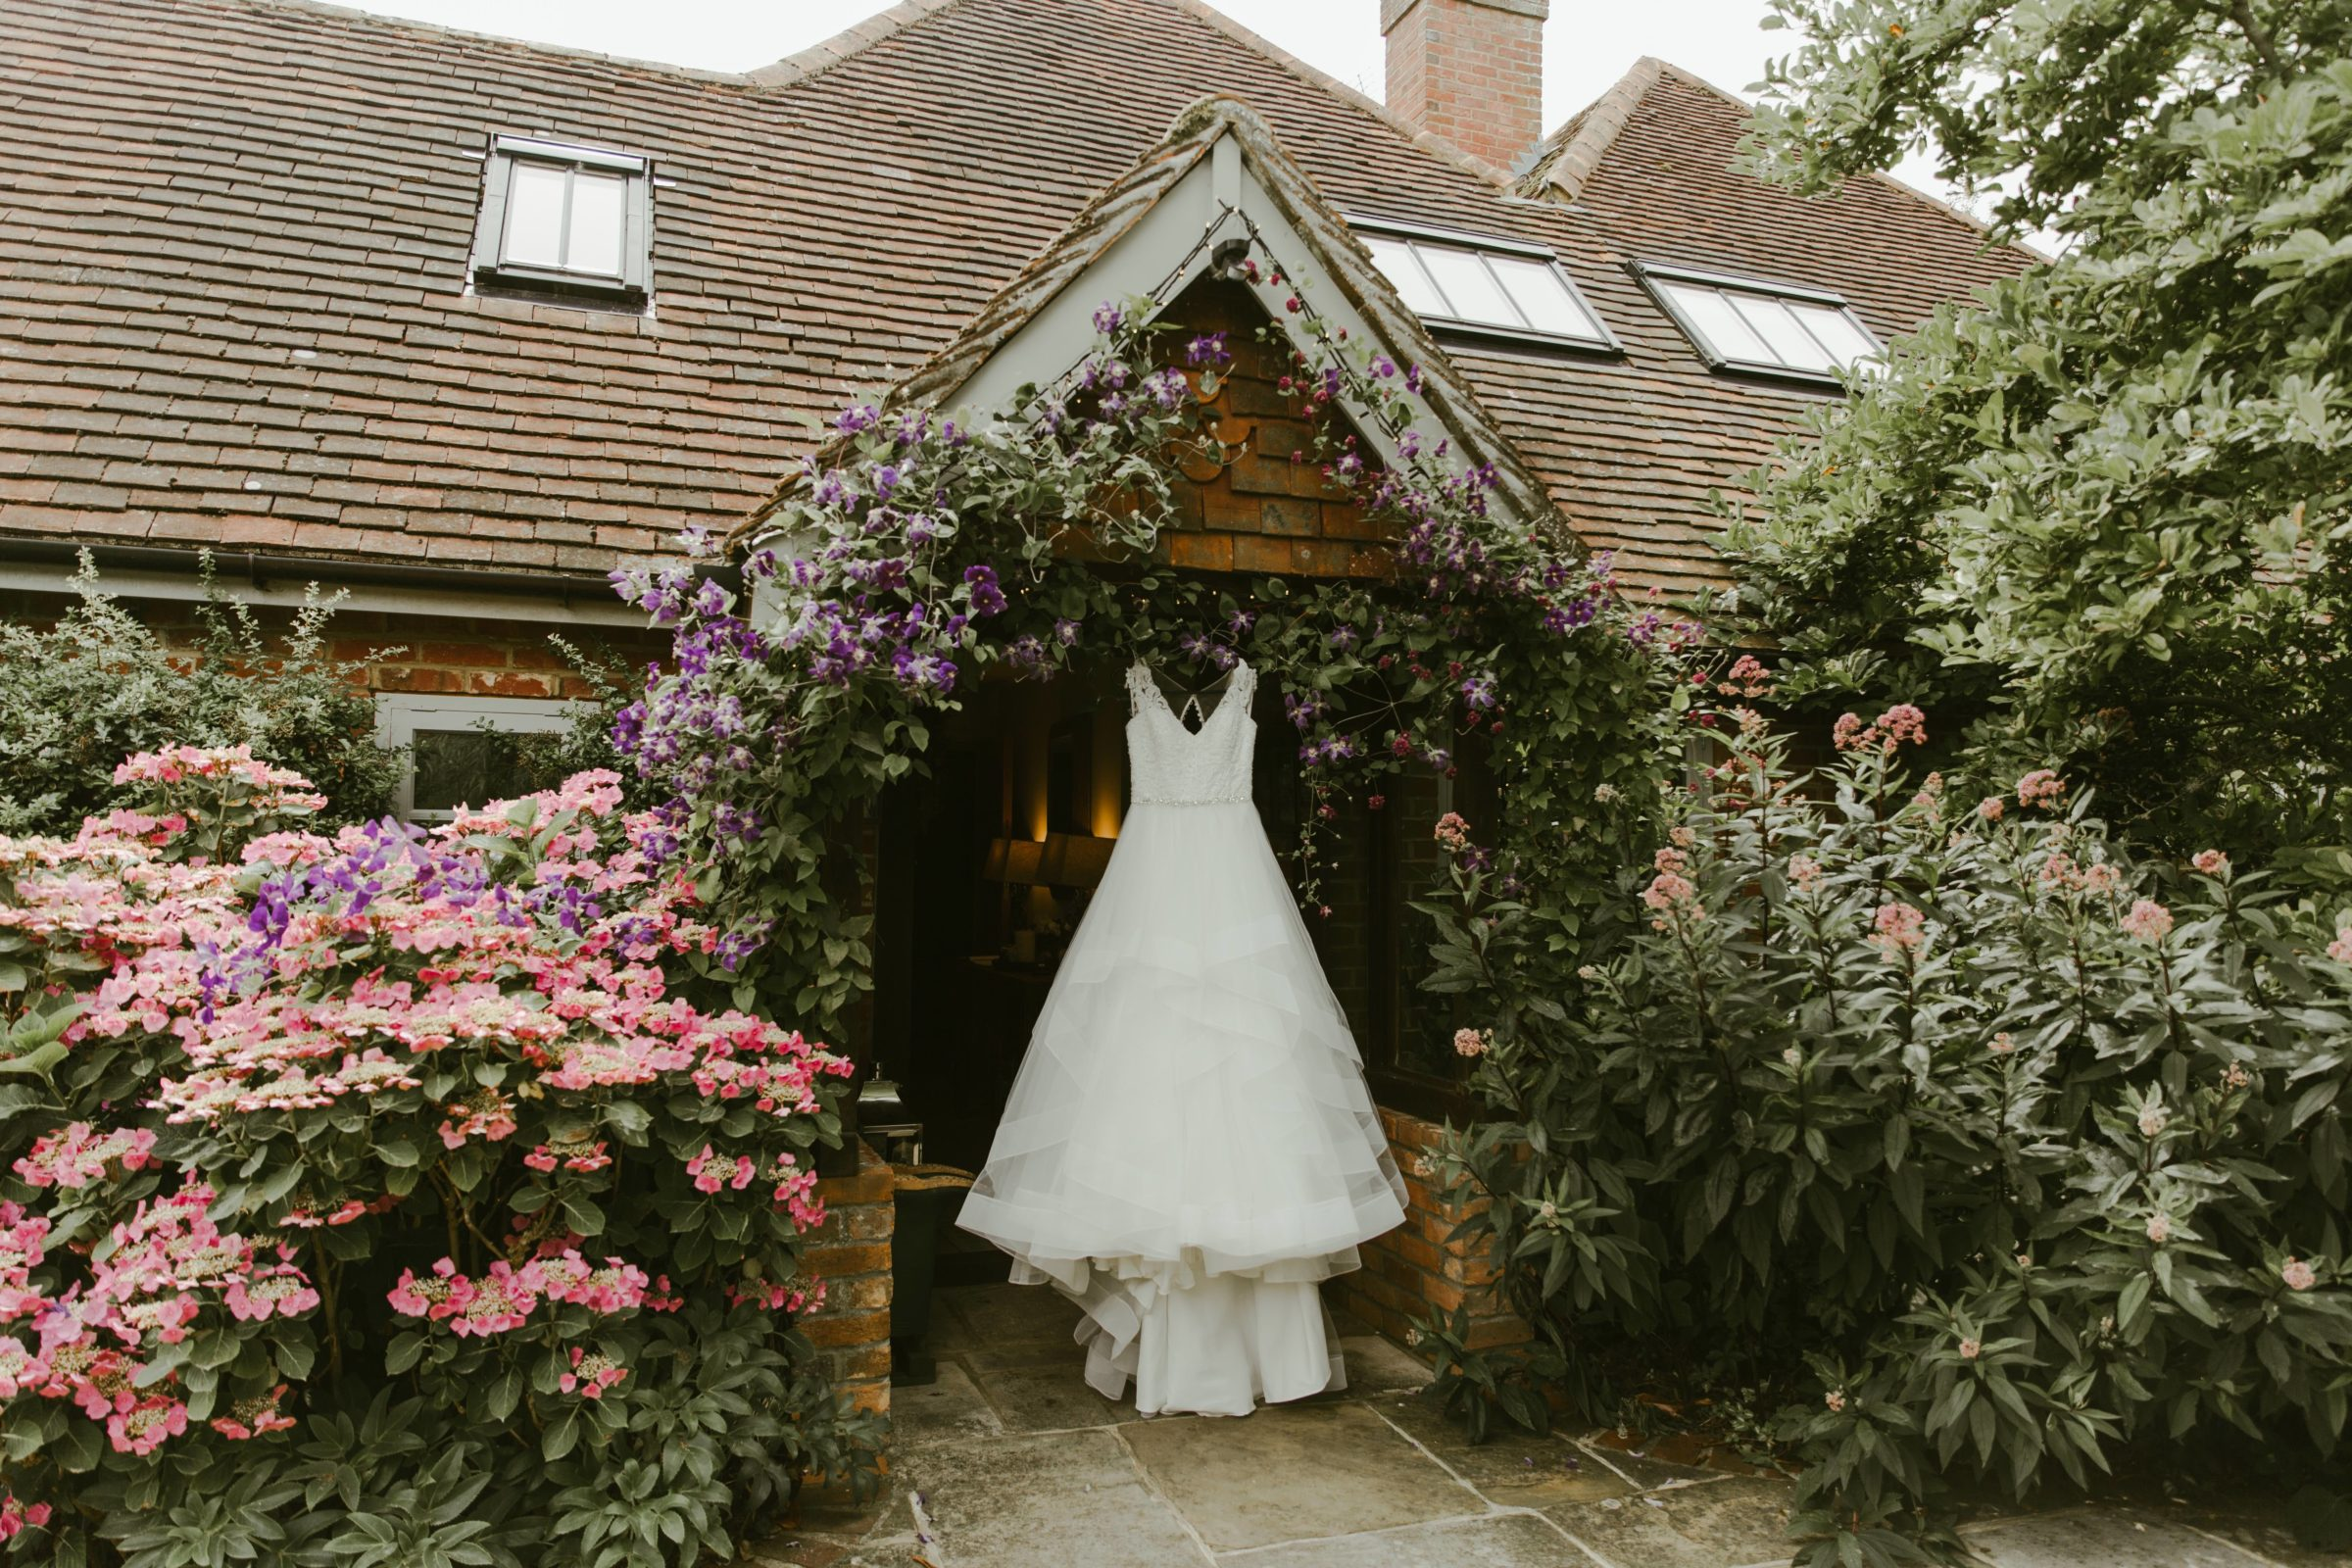 gate-street-barn-wedding-photography-photographer-surrey-uk-summer-weddings-country-dress